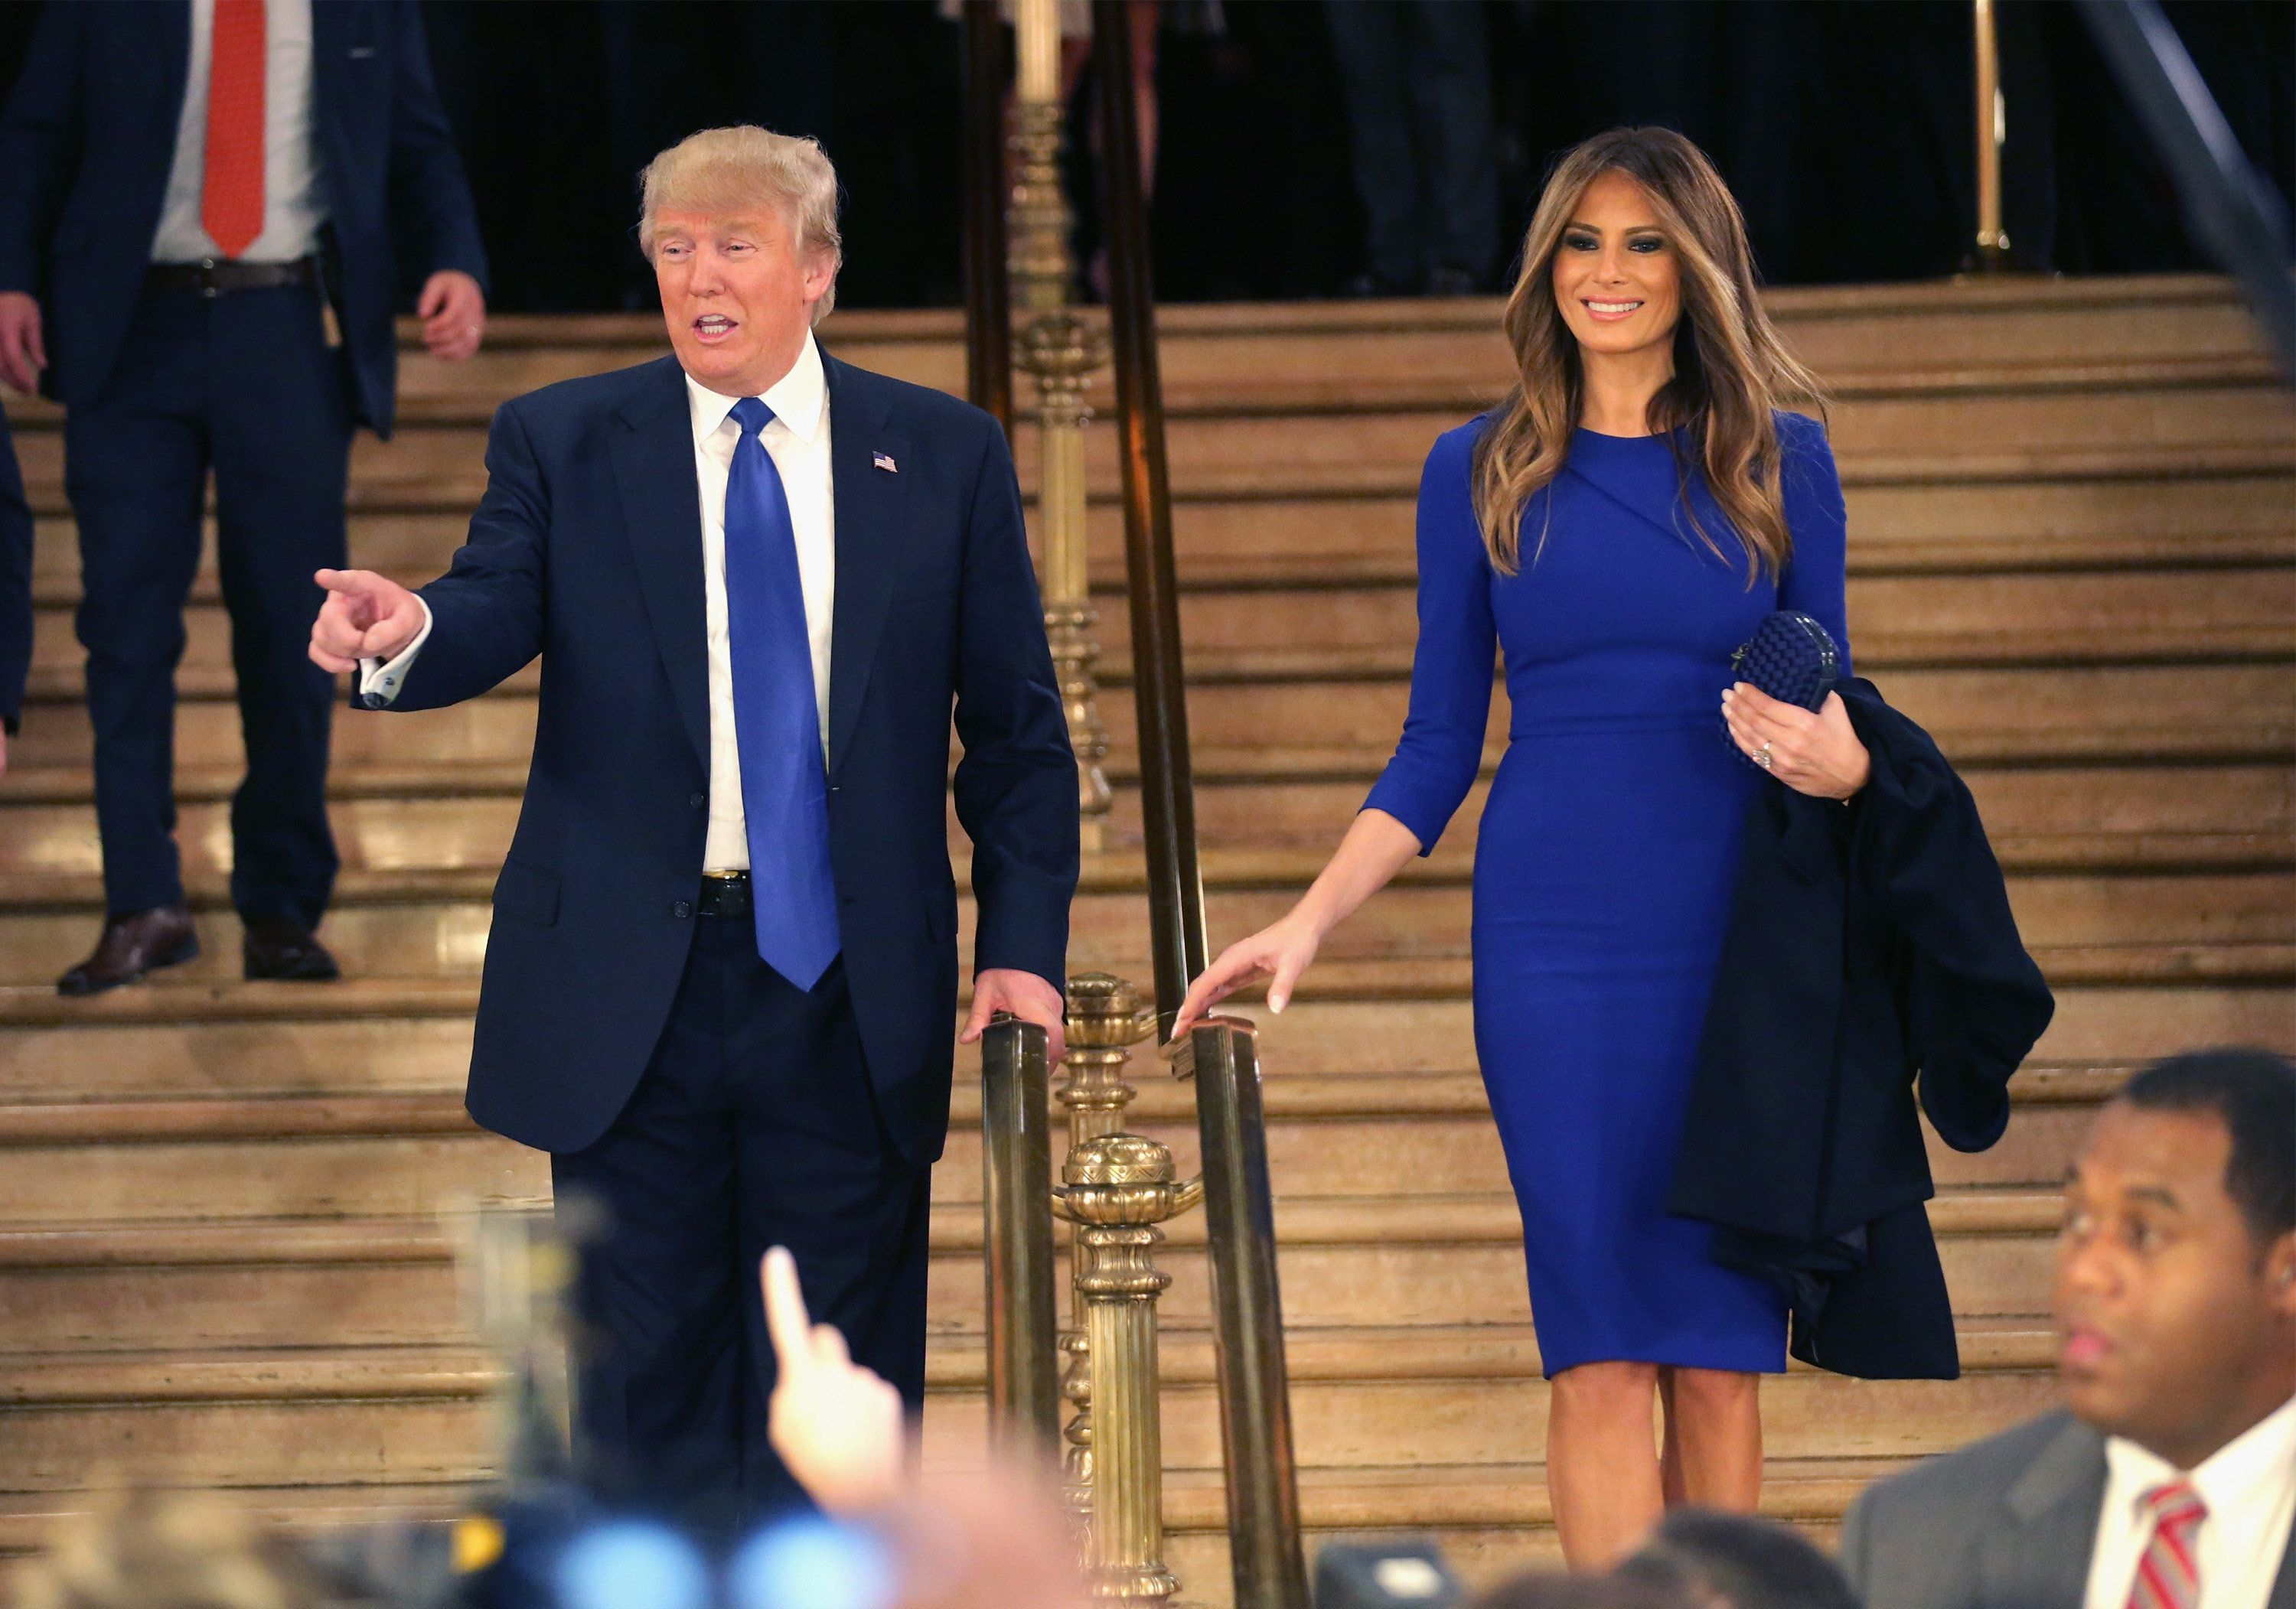 witnessing trumps wife - HD1910×1000